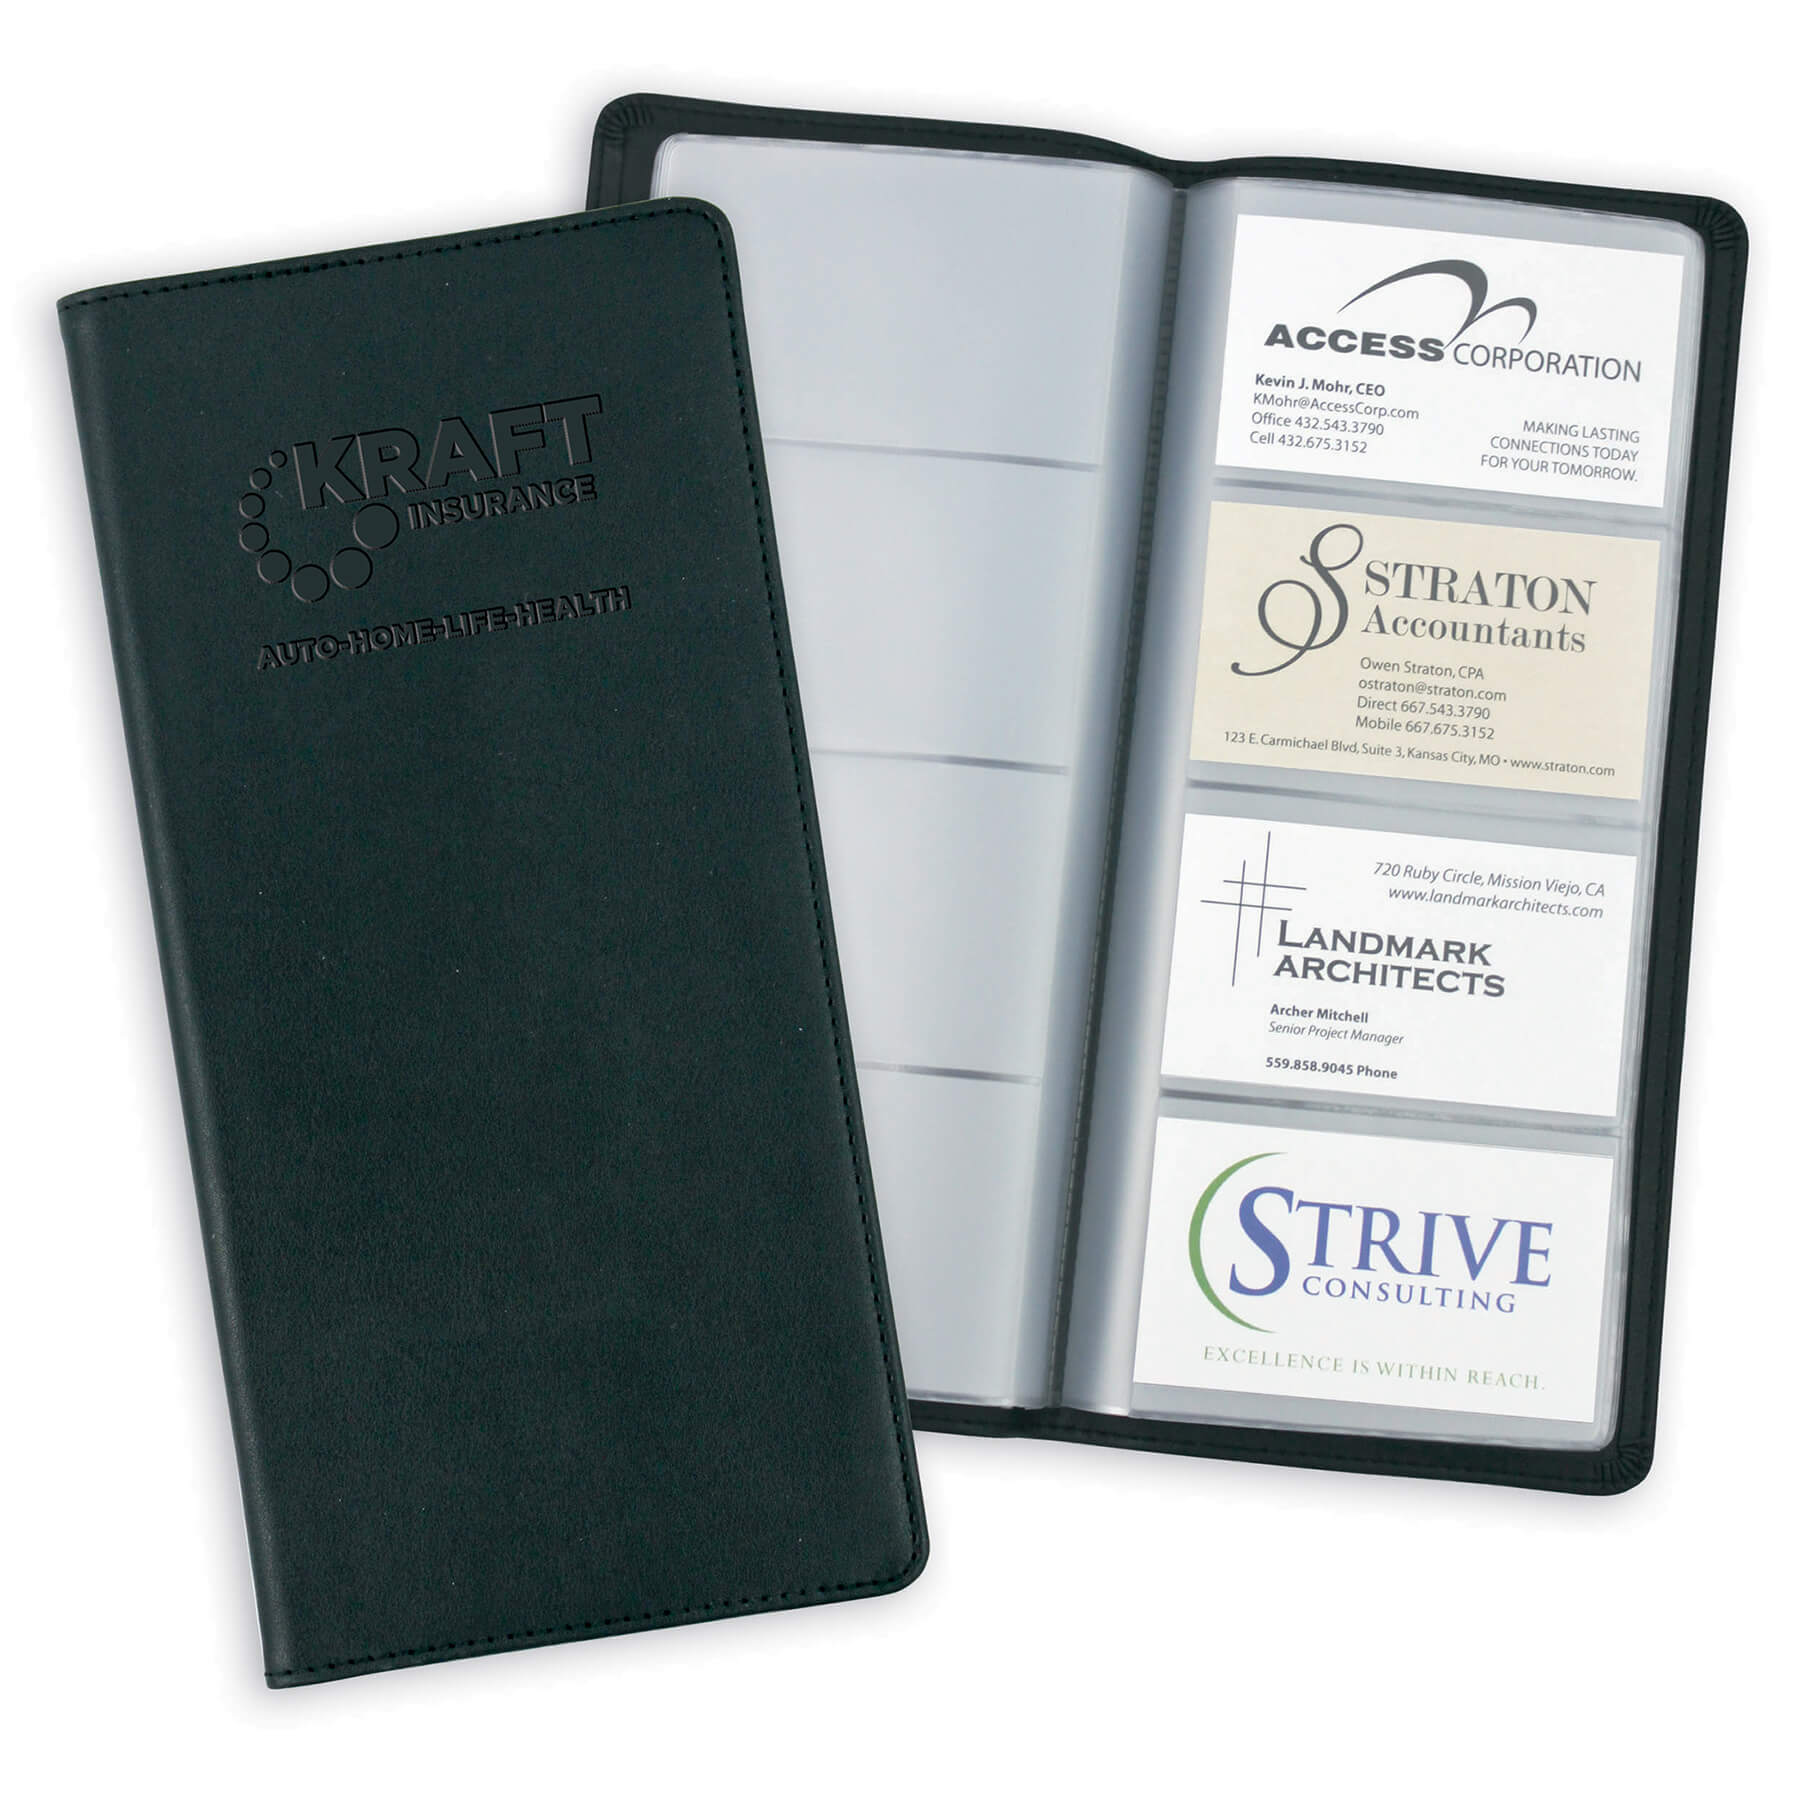 Business card holders fey promotional products group item 8074 stratton card caddy colourmoves